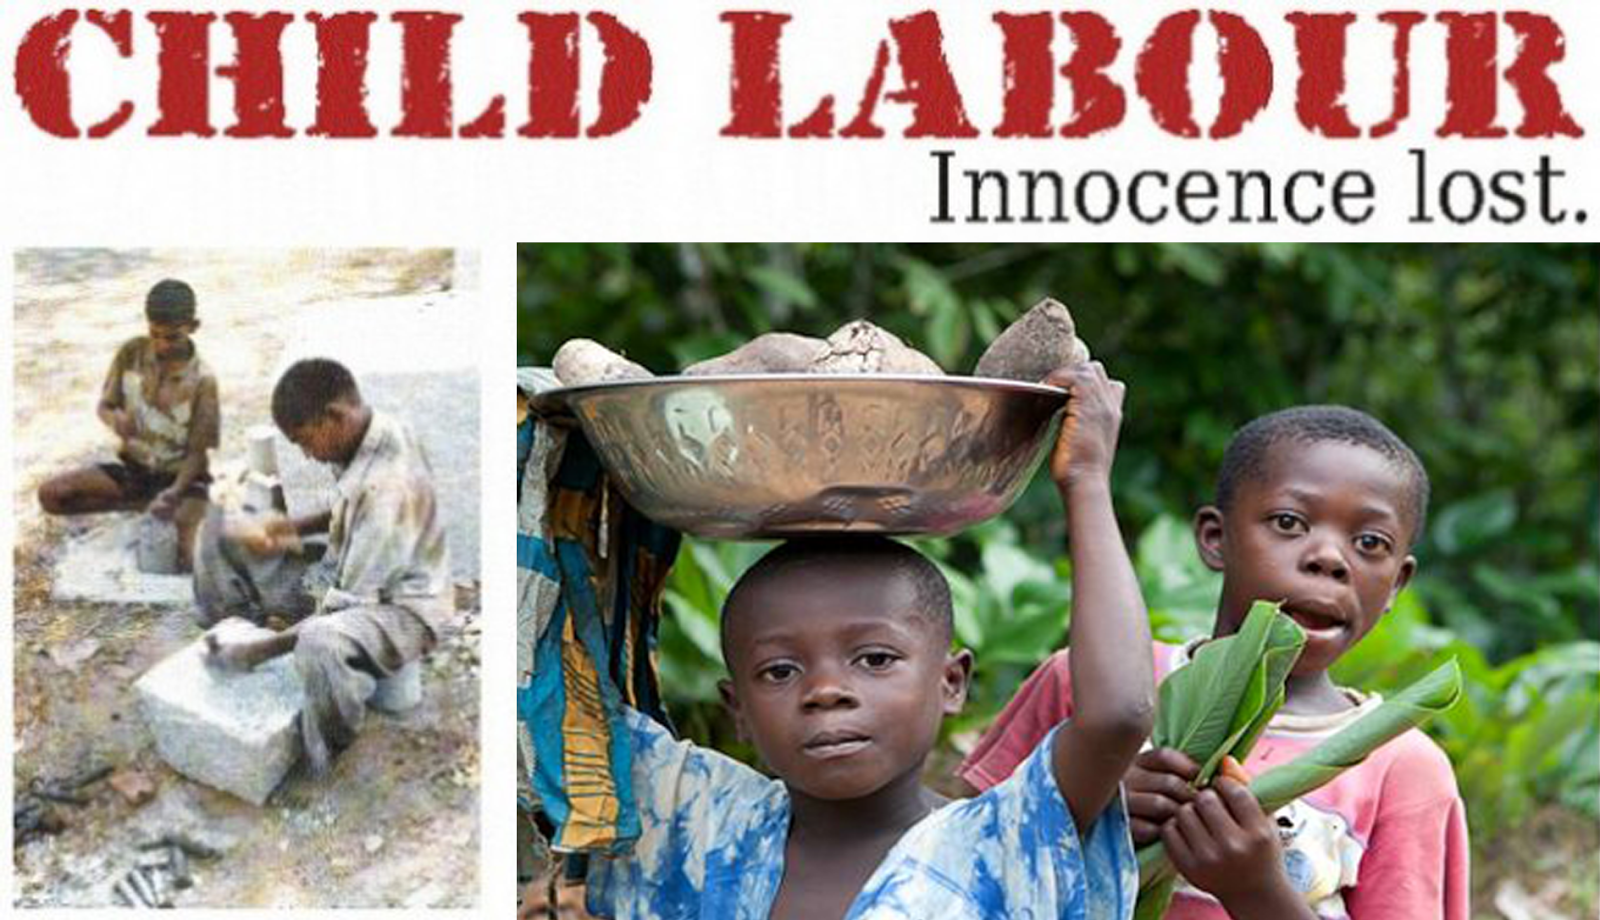 term papers on child labour Child labor essayschild labor is a serious problem in many parts of the world, especially in developing countries labor is defined as physical or mental work especially of the hard or fatiguing kind.